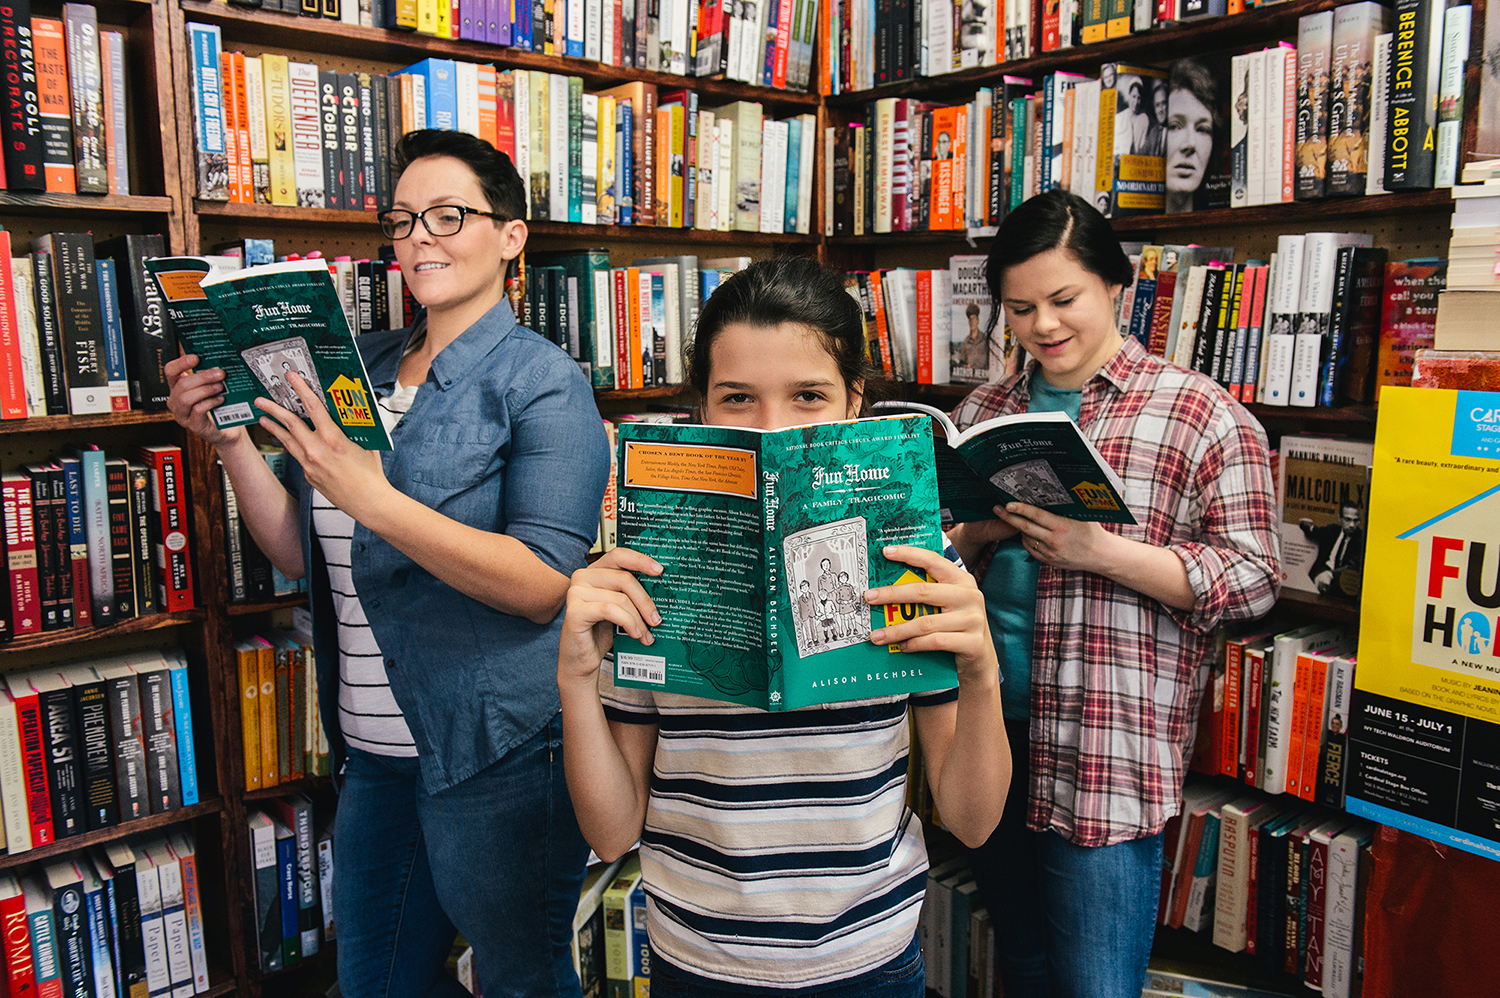 Cardinal Stage has partnered with several local bookstores and is hosting a 'Fun Home' book club prior to the June 20 performance. | Photo courtesy of Blueline